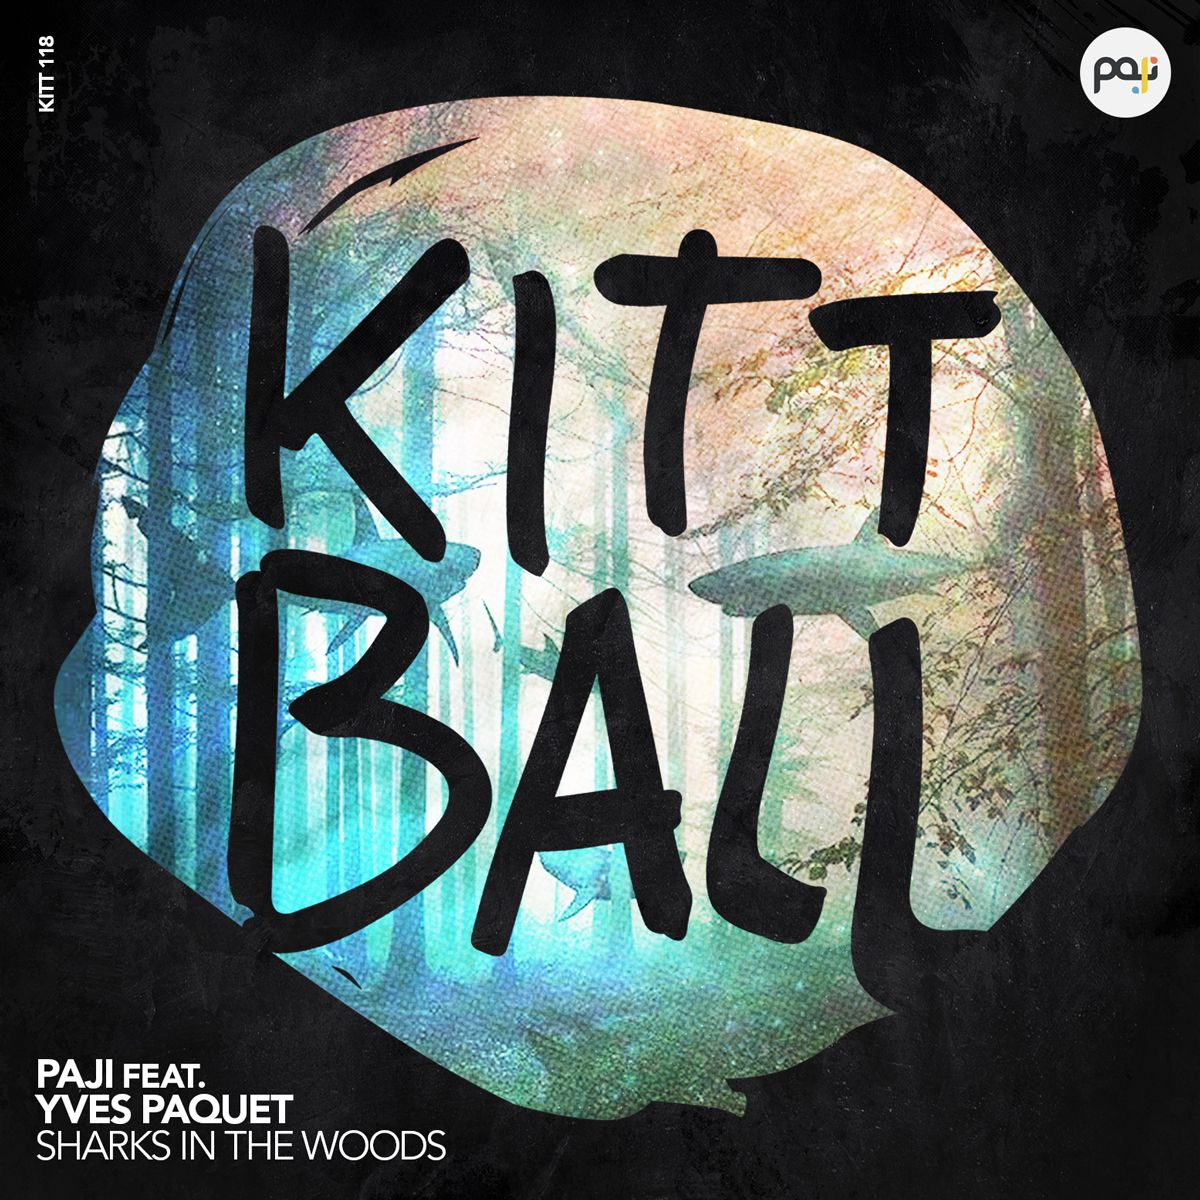 packshot_paji_feat._yves_paquet_-_sharks_in_the_woods_-_kittball_records.jpg